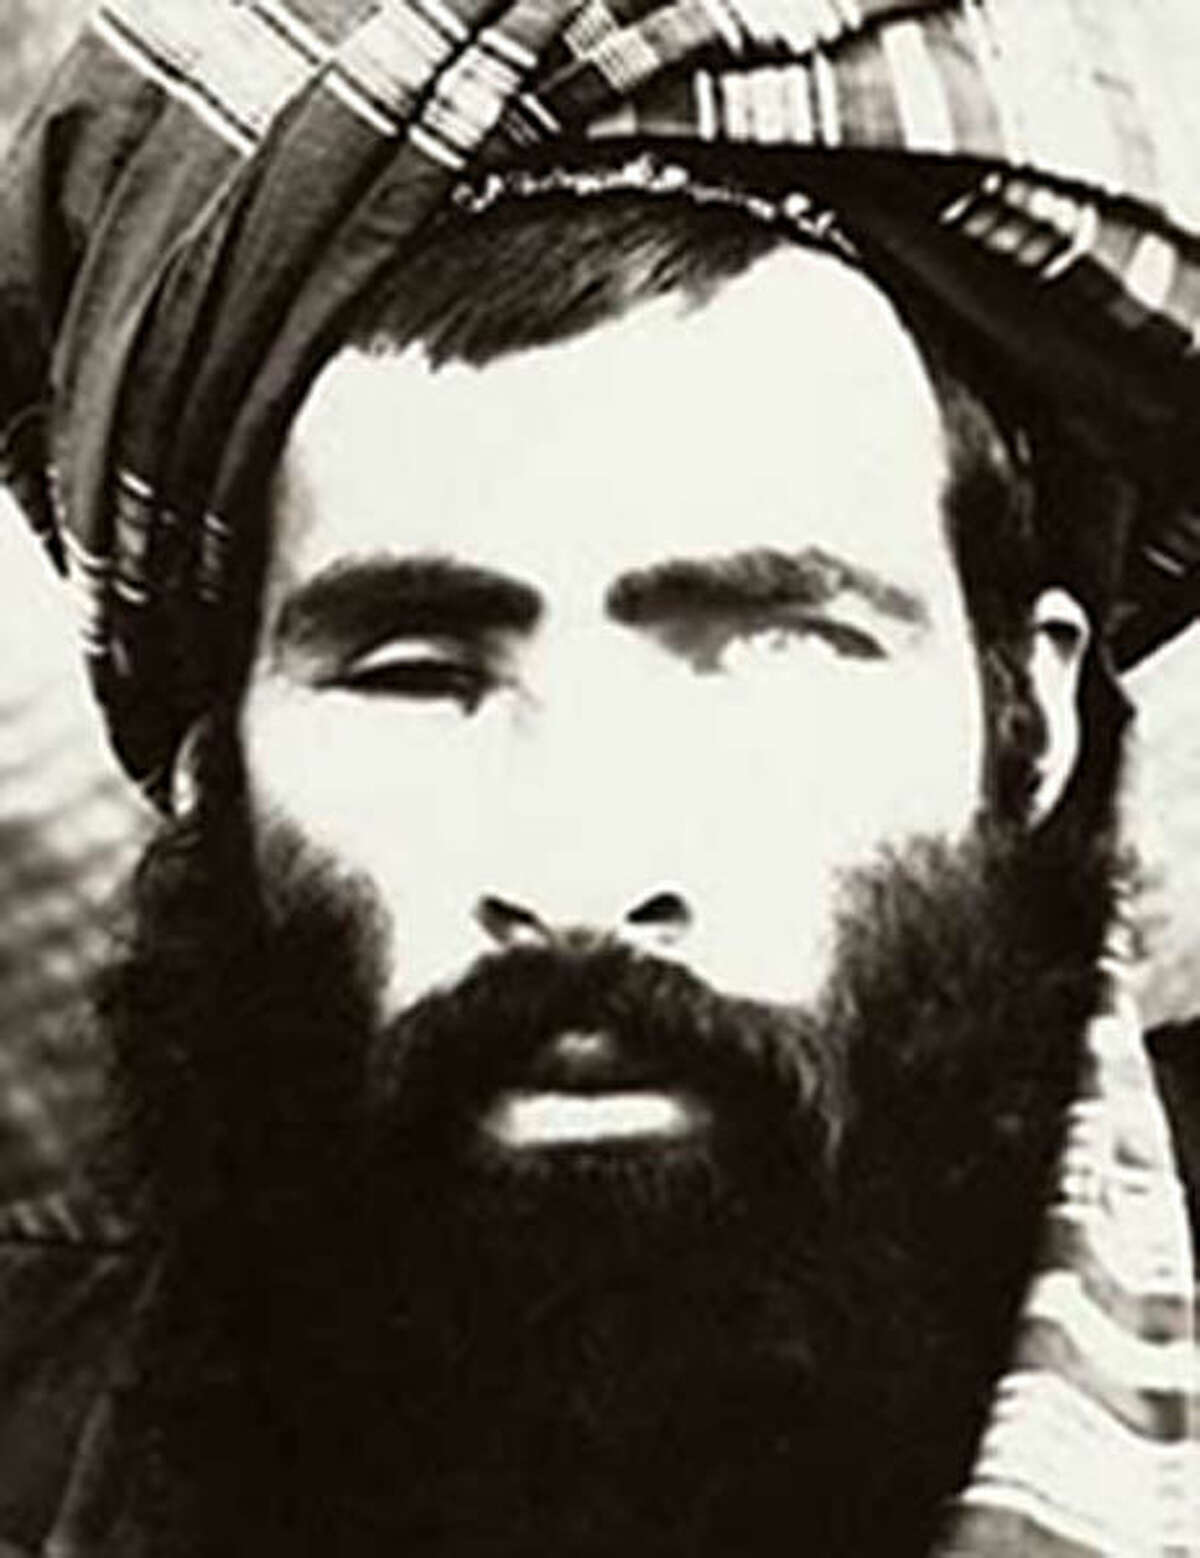 FILE - The Afghan government said on Wednesday, July 29, 2015, that it was investigating new reports that Mullah Muhammad Omar, the elusive leader of the Taliban, is dead. A photo believed to be of Mullah Omar which is part of a wanted poster produced by the FBI. (FBI via The New York Times)